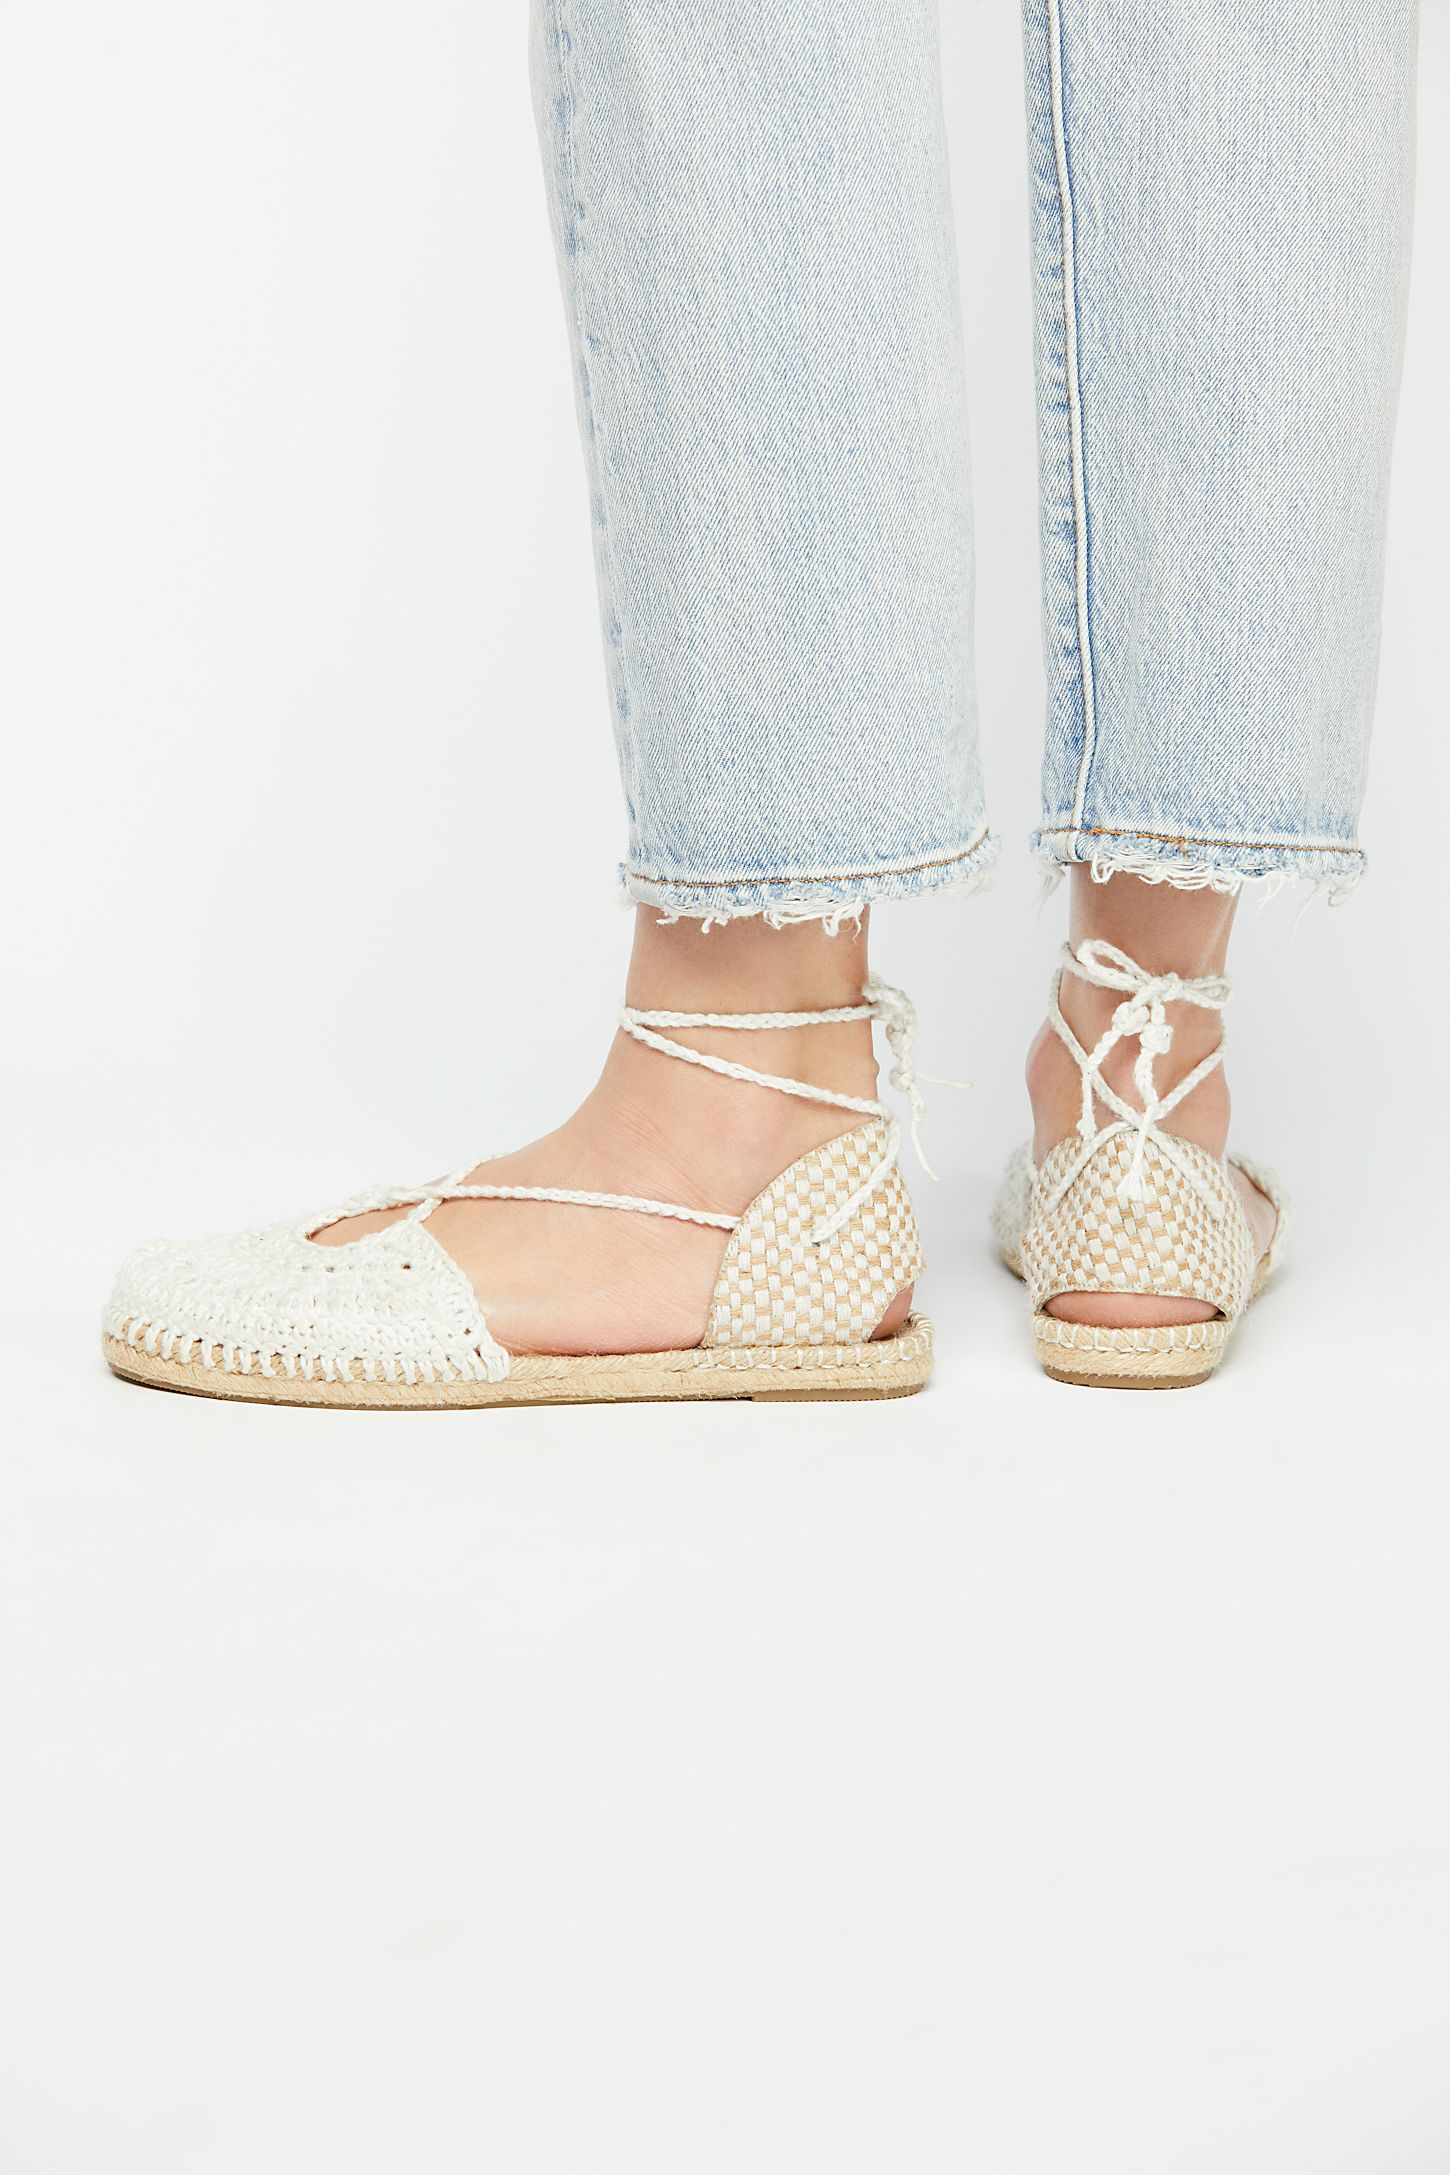 Catalina Crochet Espadrille looking for cheap online get to buy online factory outlet sale online store sale free shipping largest supplier 1B165rgNq5